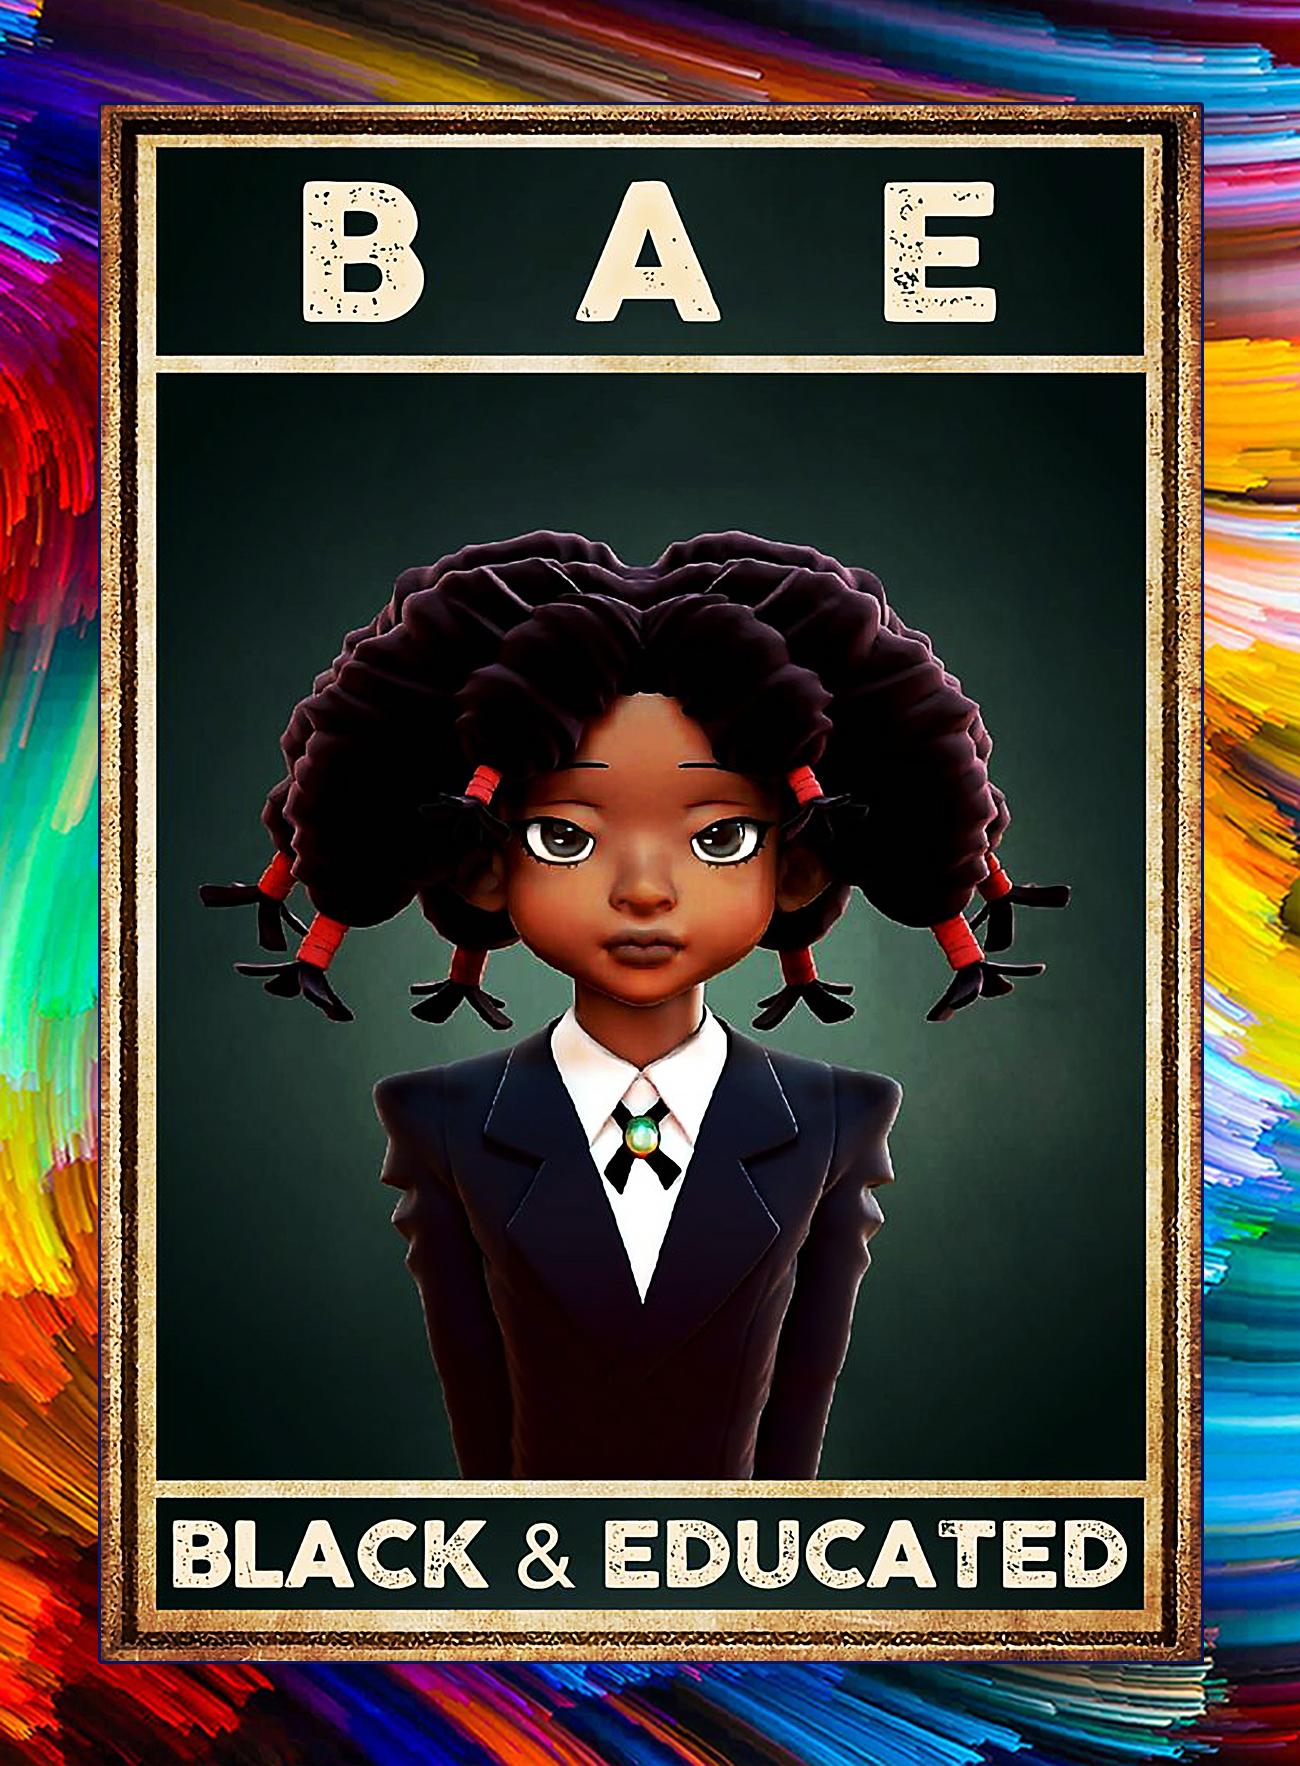 Black and educated poster - A4